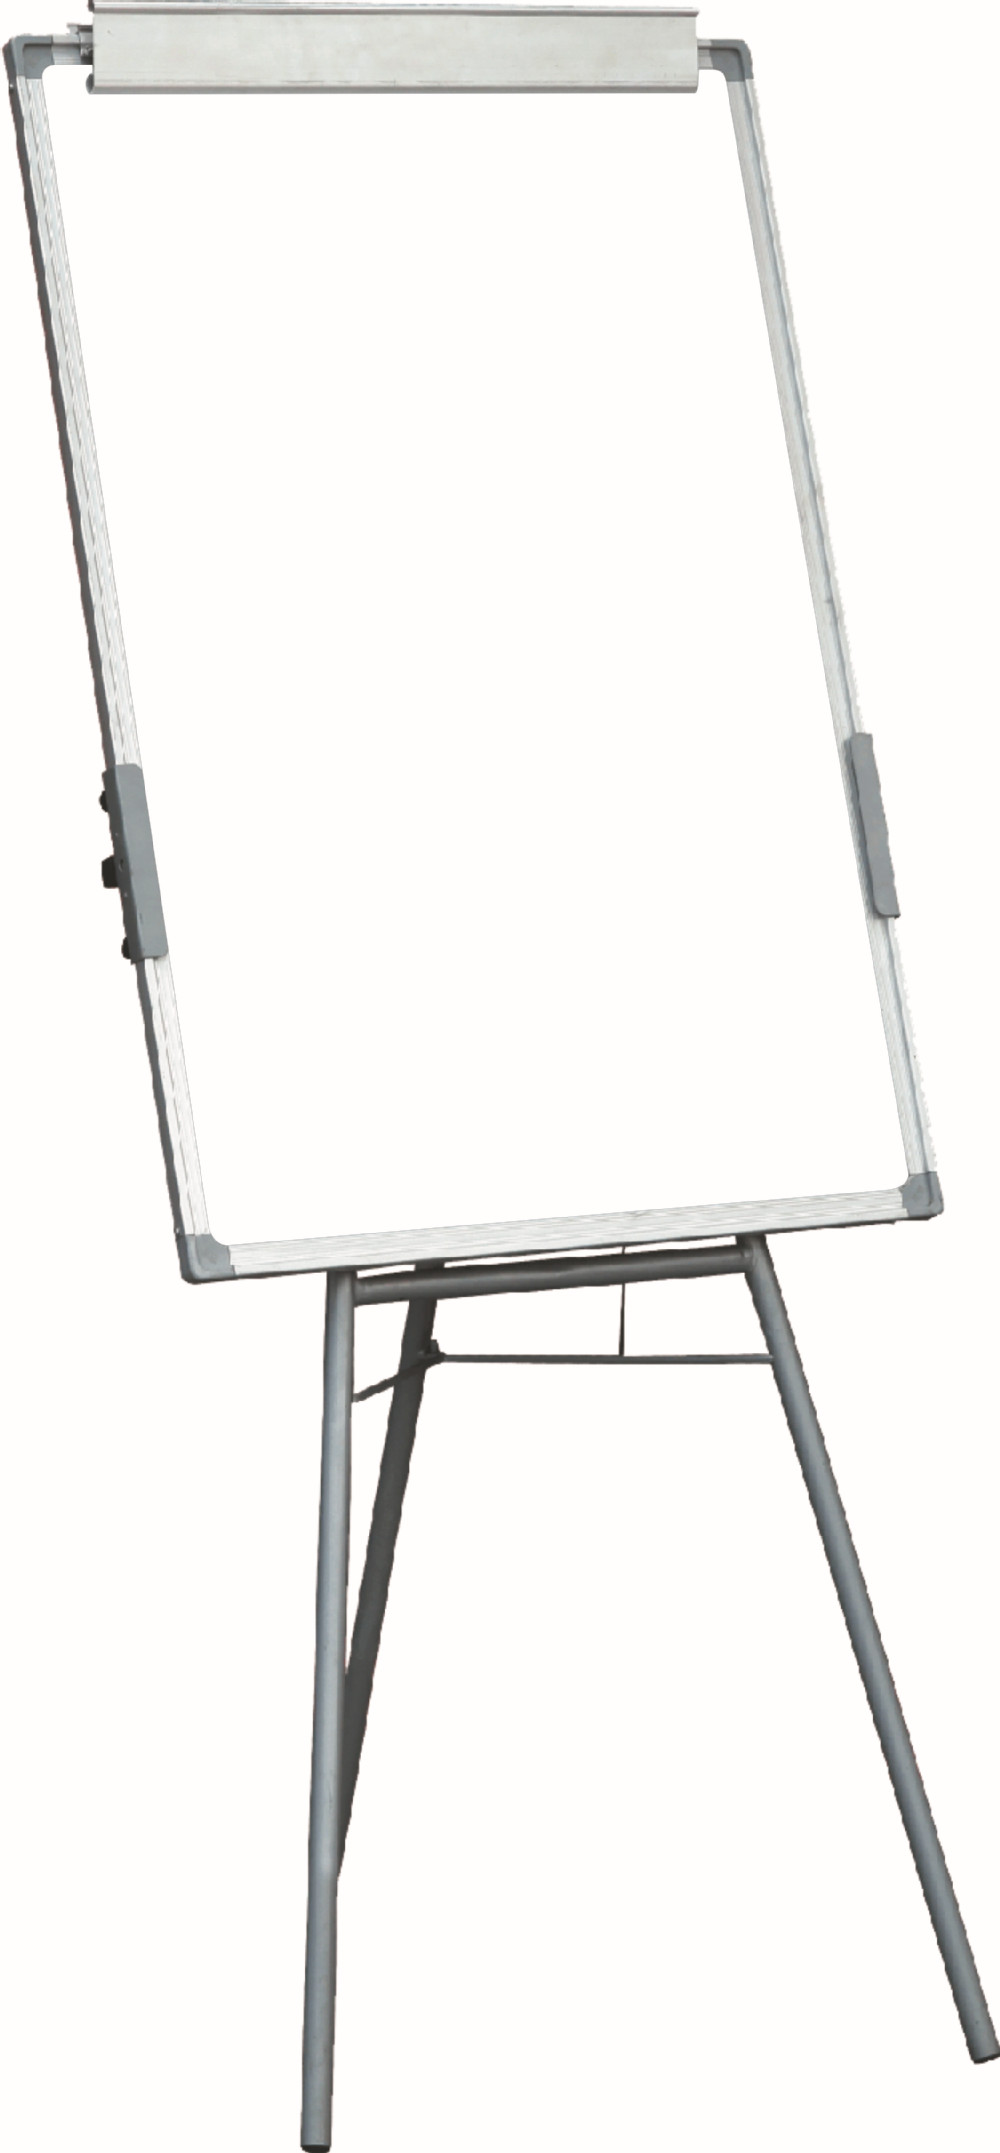 whiteboard new product for - Whiteboard Easel